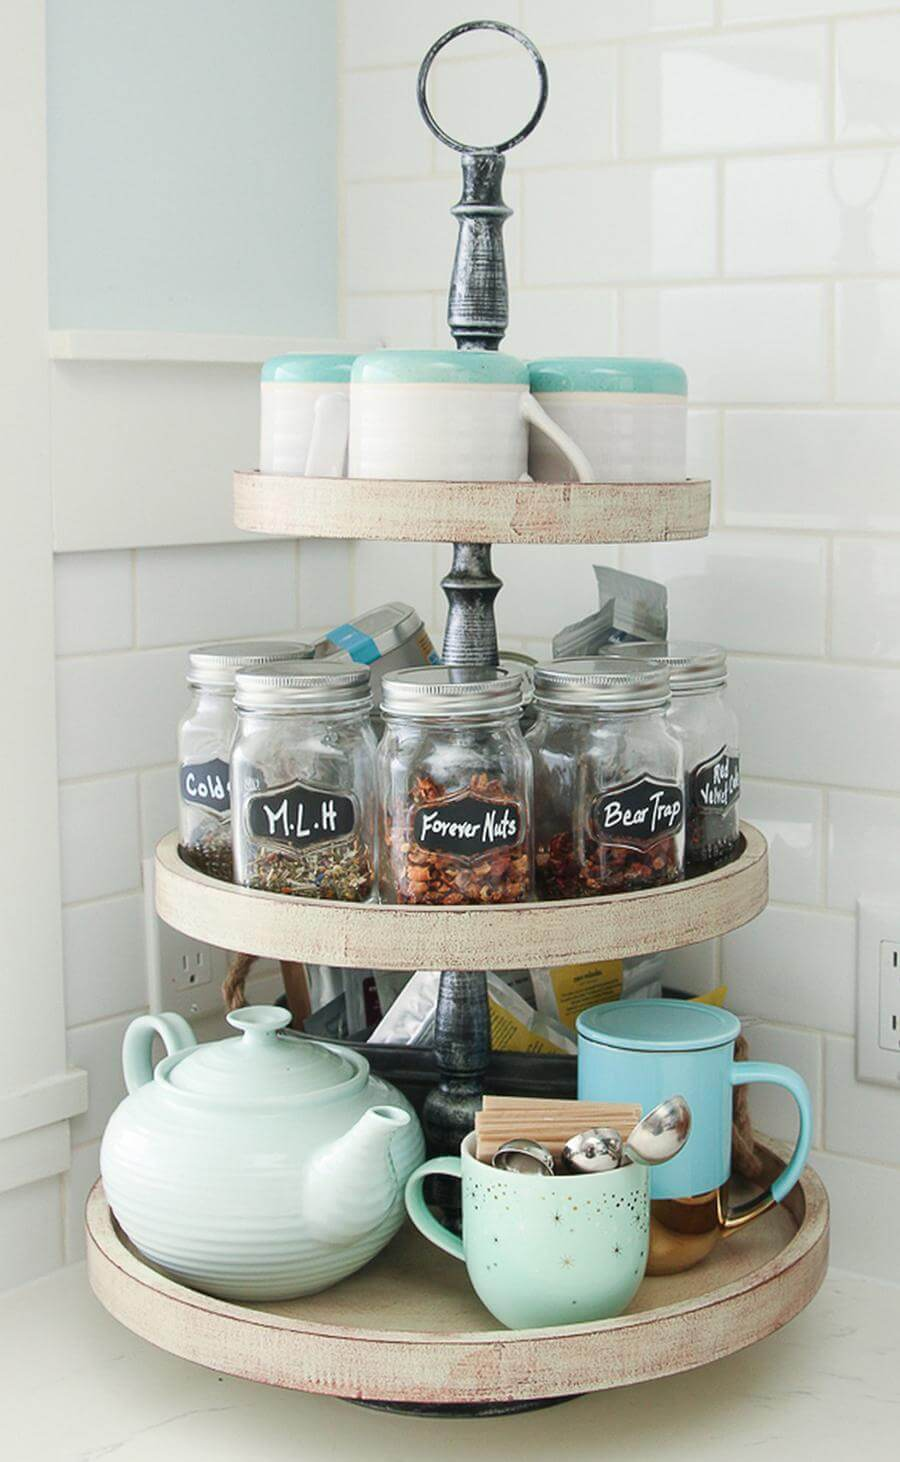 Three Tiers for Tea Caddies